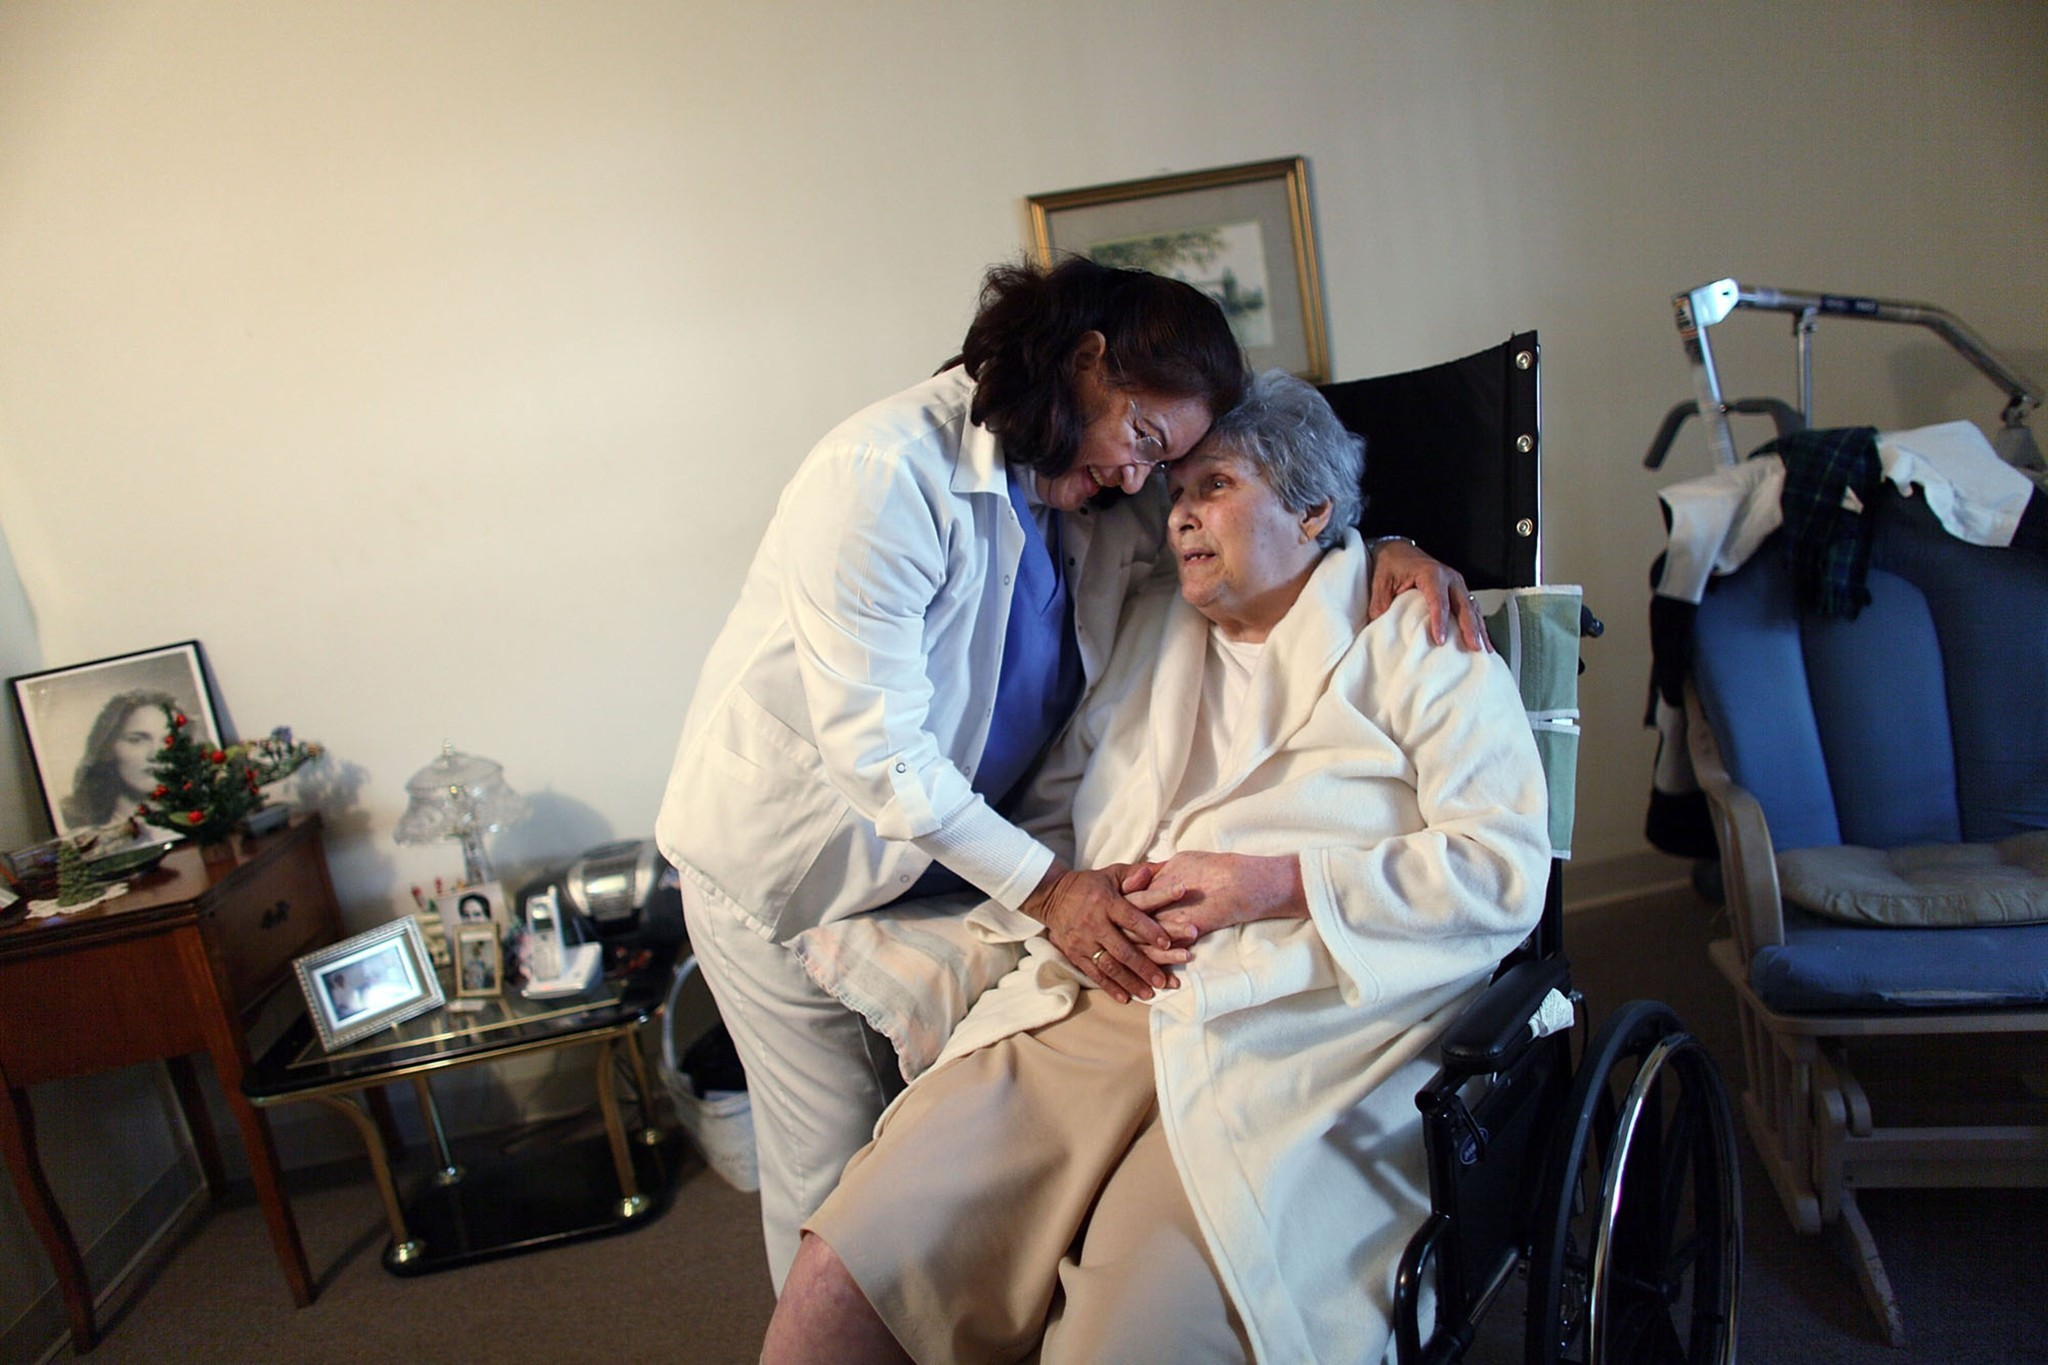 The Labor Department on Tuesday announced a rule to extend minimum wage and overtime protections to nearly 2 million direct care workers, including home health aides. Above, a home health aide working with a patient in Florida in 2010.